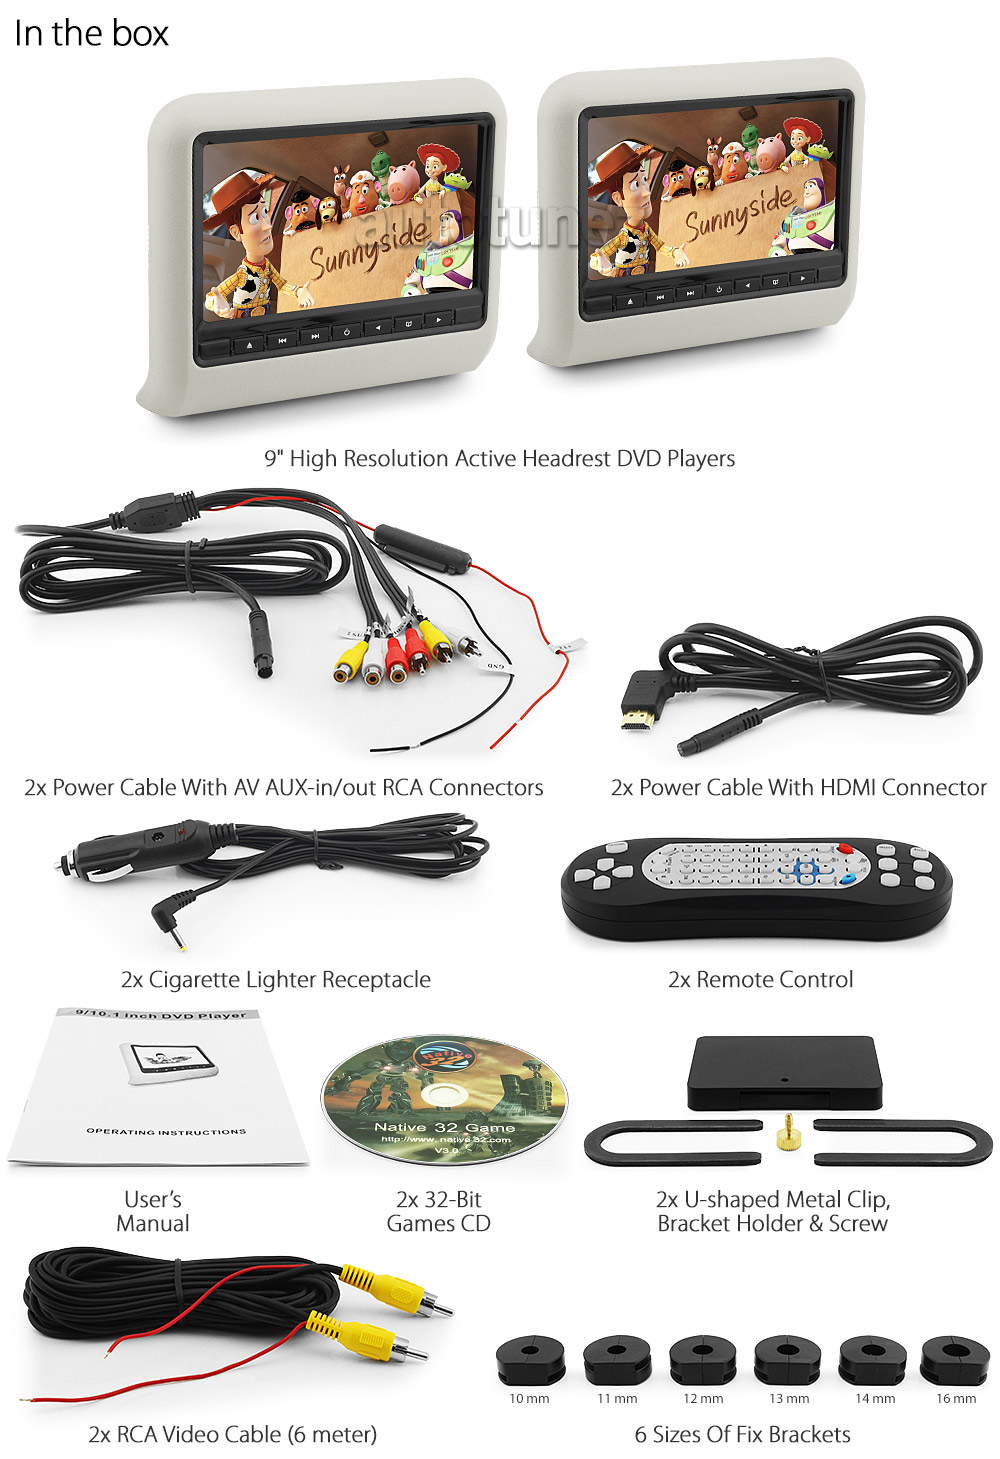 HD02 Easy-to-install 9' high resolution superior quality active headrest DVD USB SD player with 32-bit game Free wireless IR headphones 12V cigarette lighter receptacle power source controls